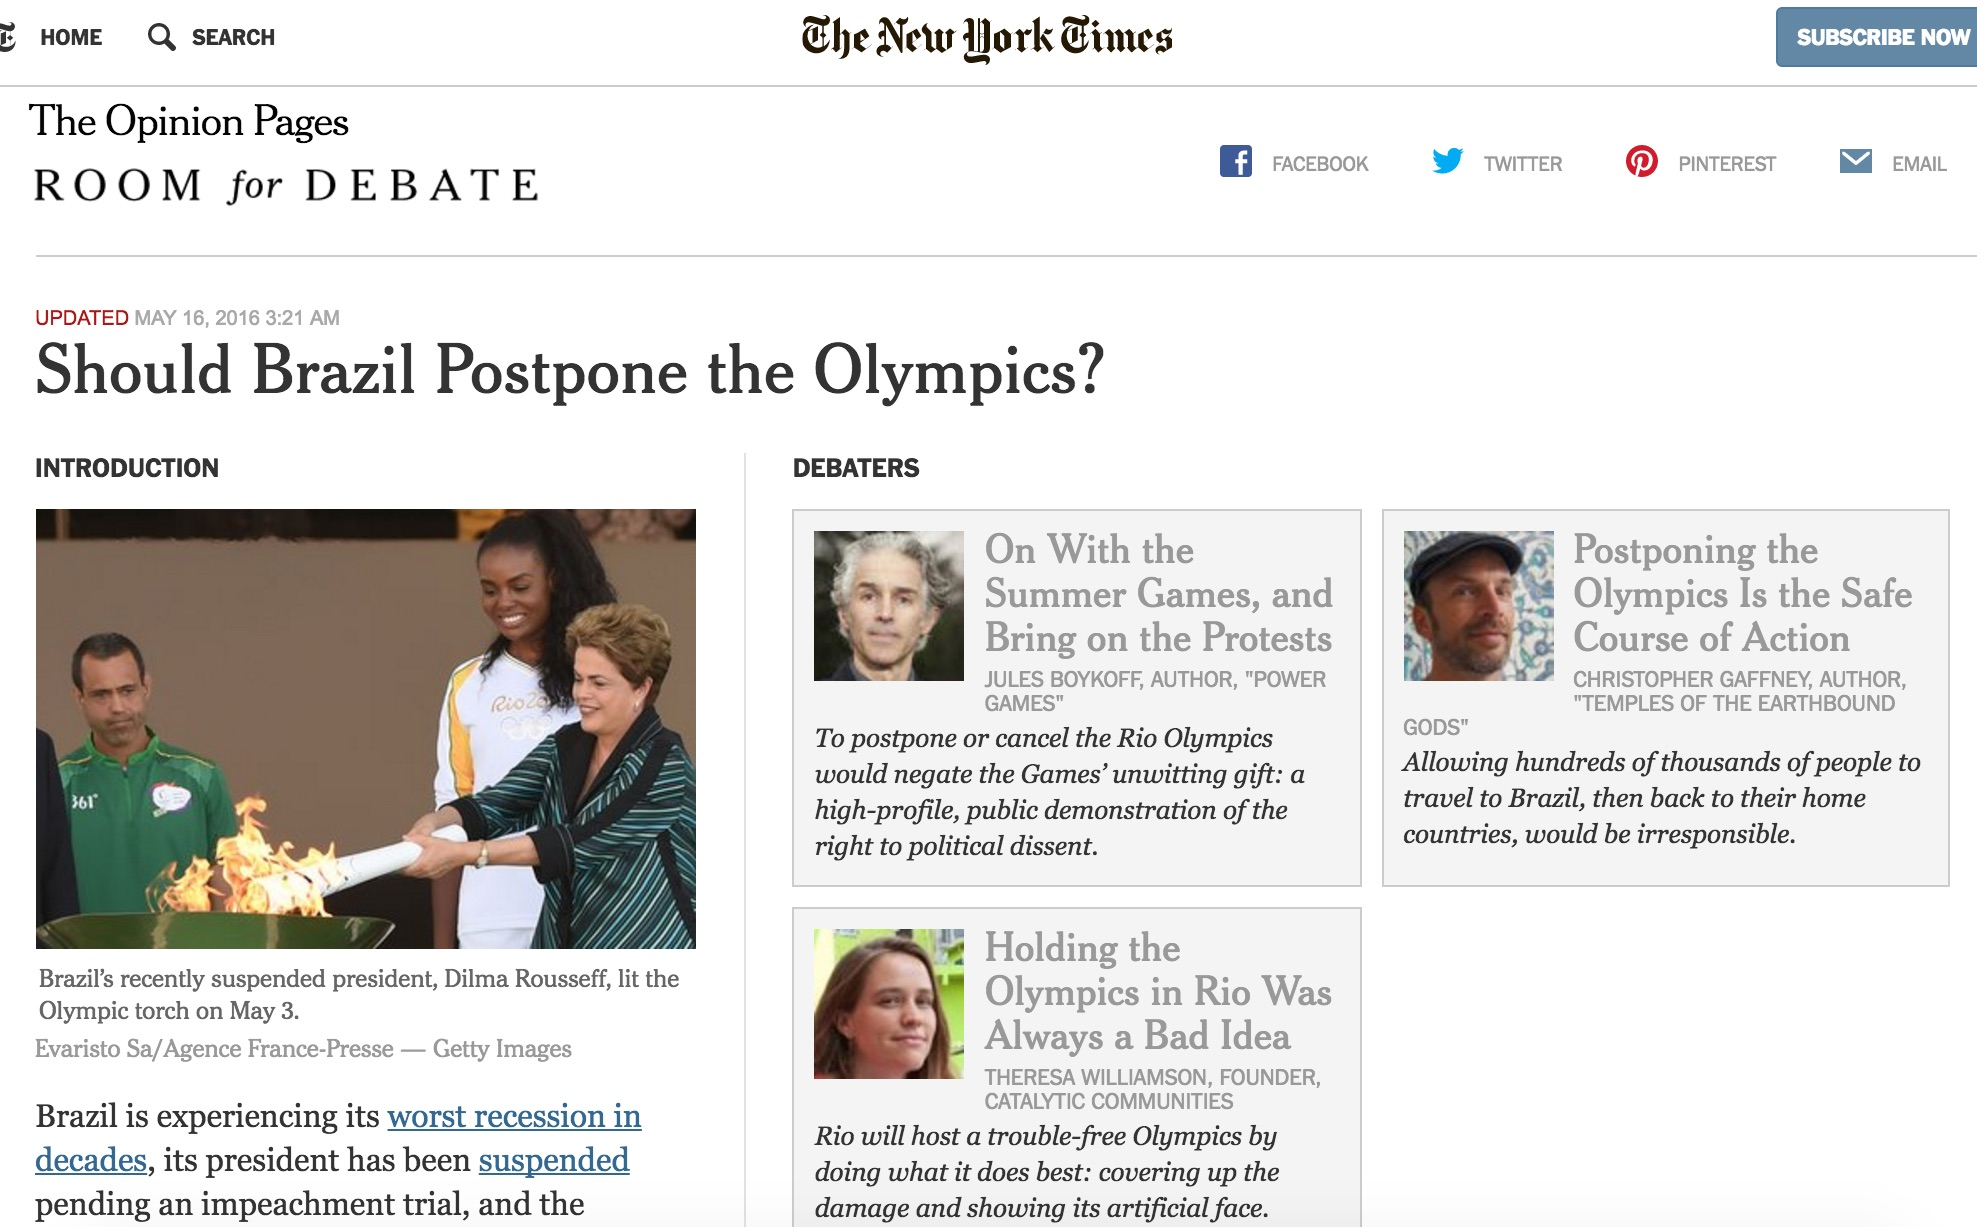 Our Opinion Piece on Whether to Postpone the Olympics in New York ...